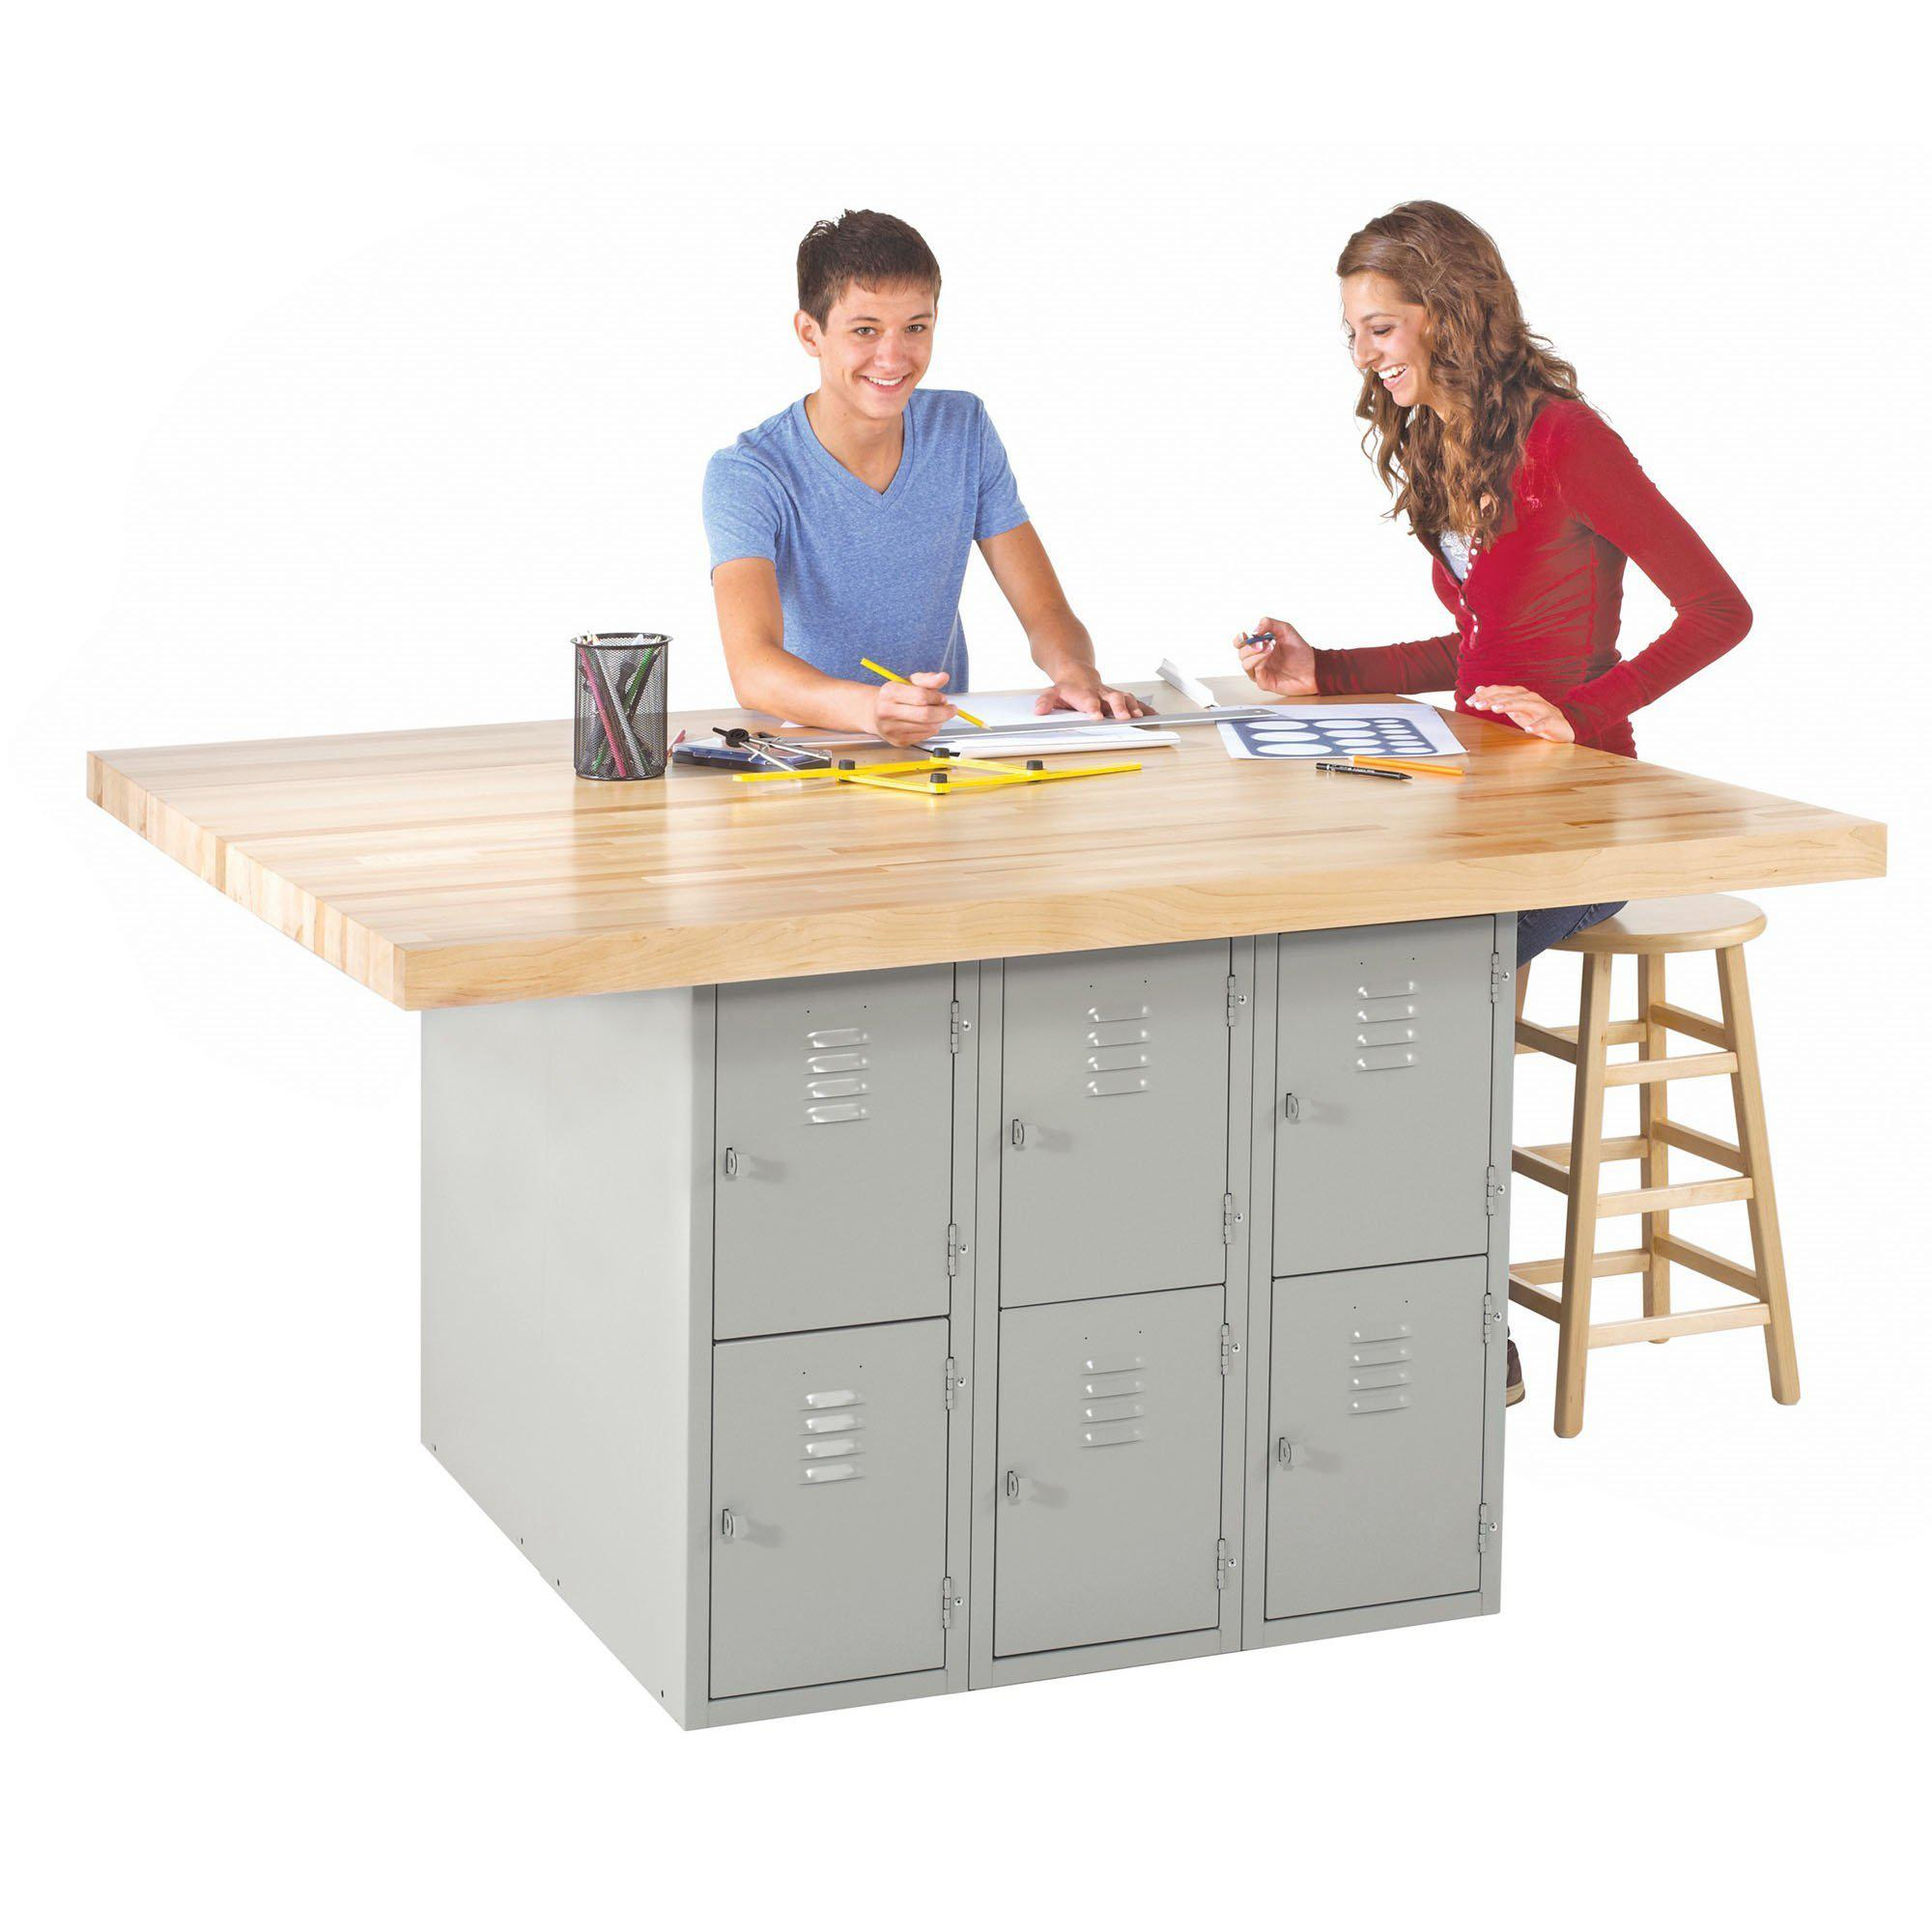 Four-Station Steel Workbench with 12 Locker Openings